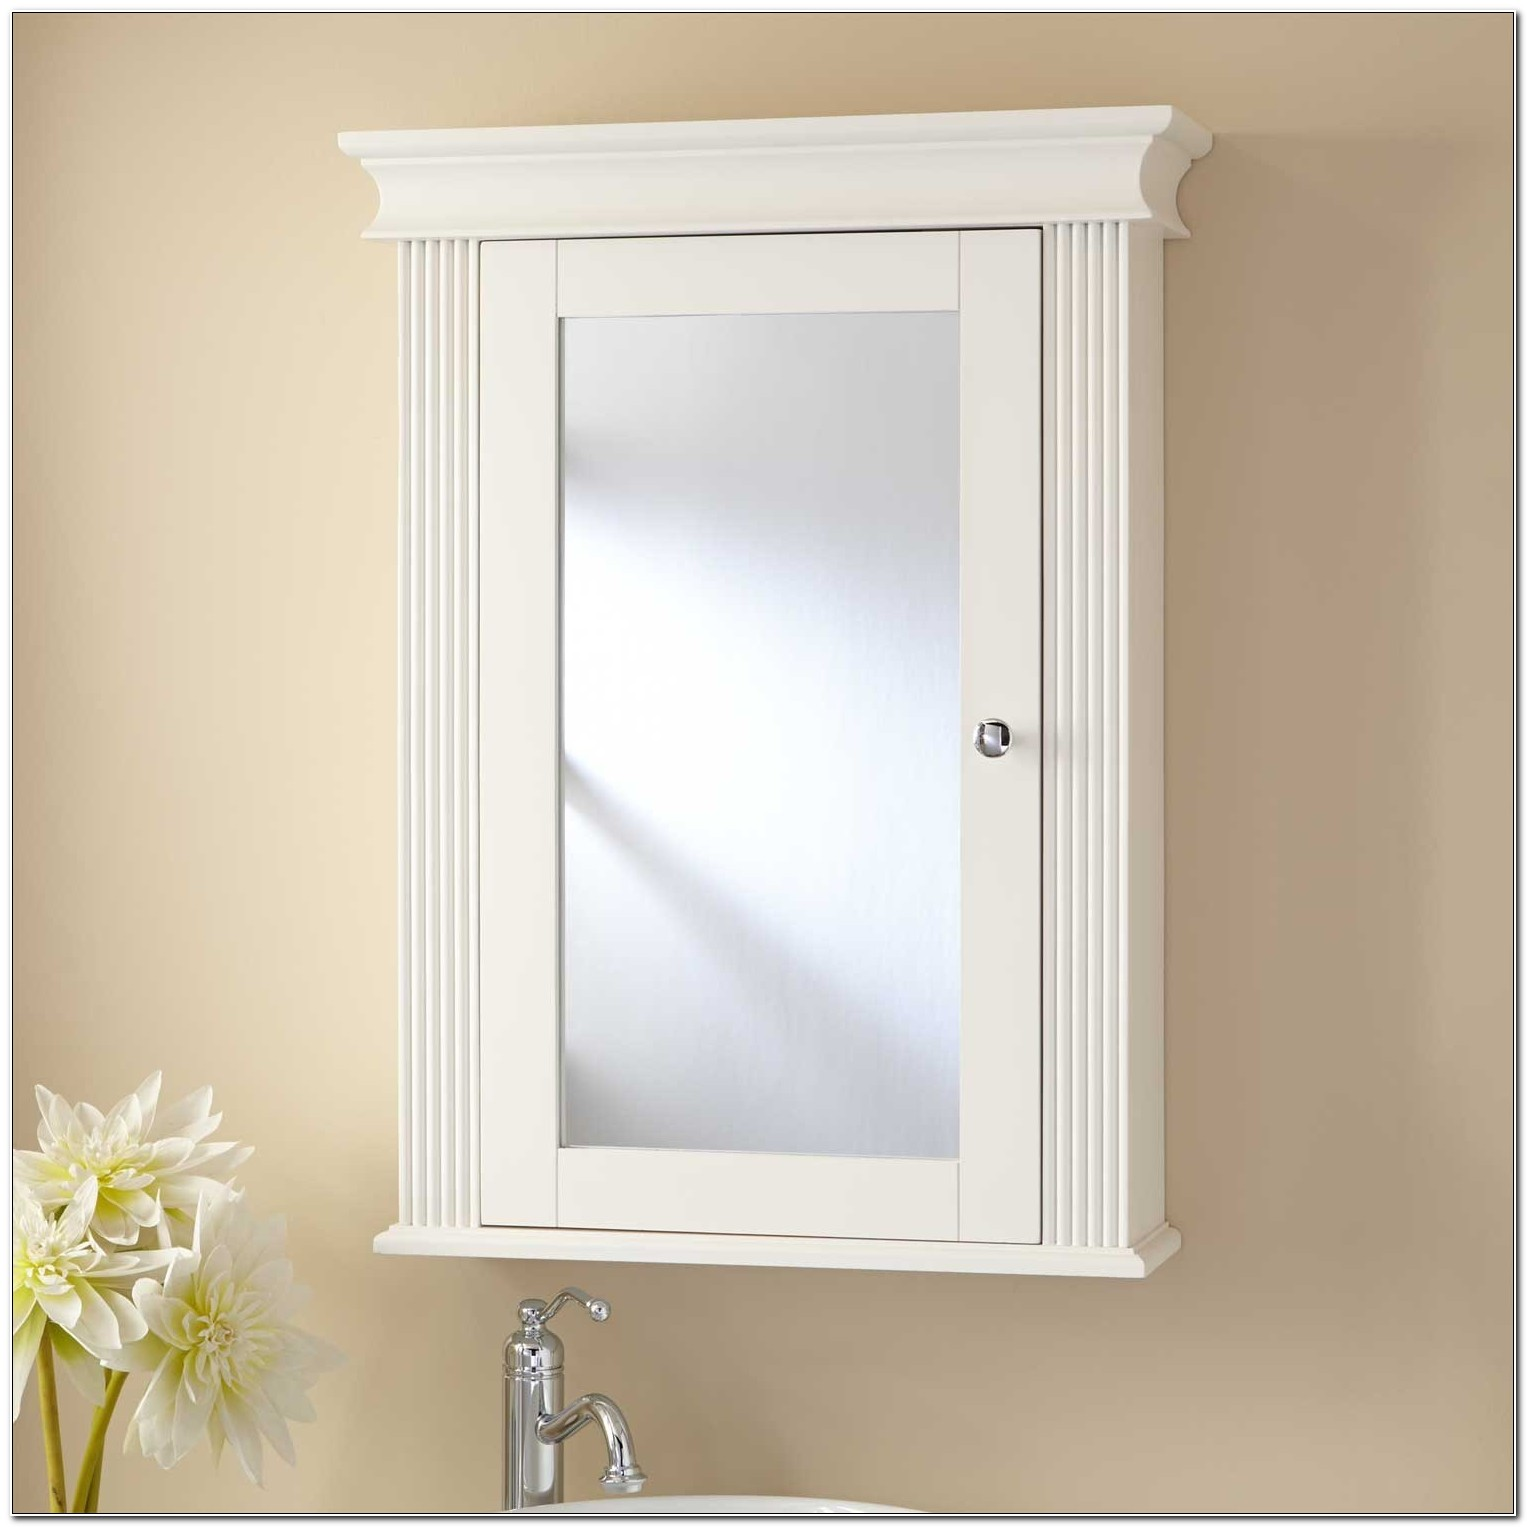 Non Mirrored Recessed Medicine Cabinets